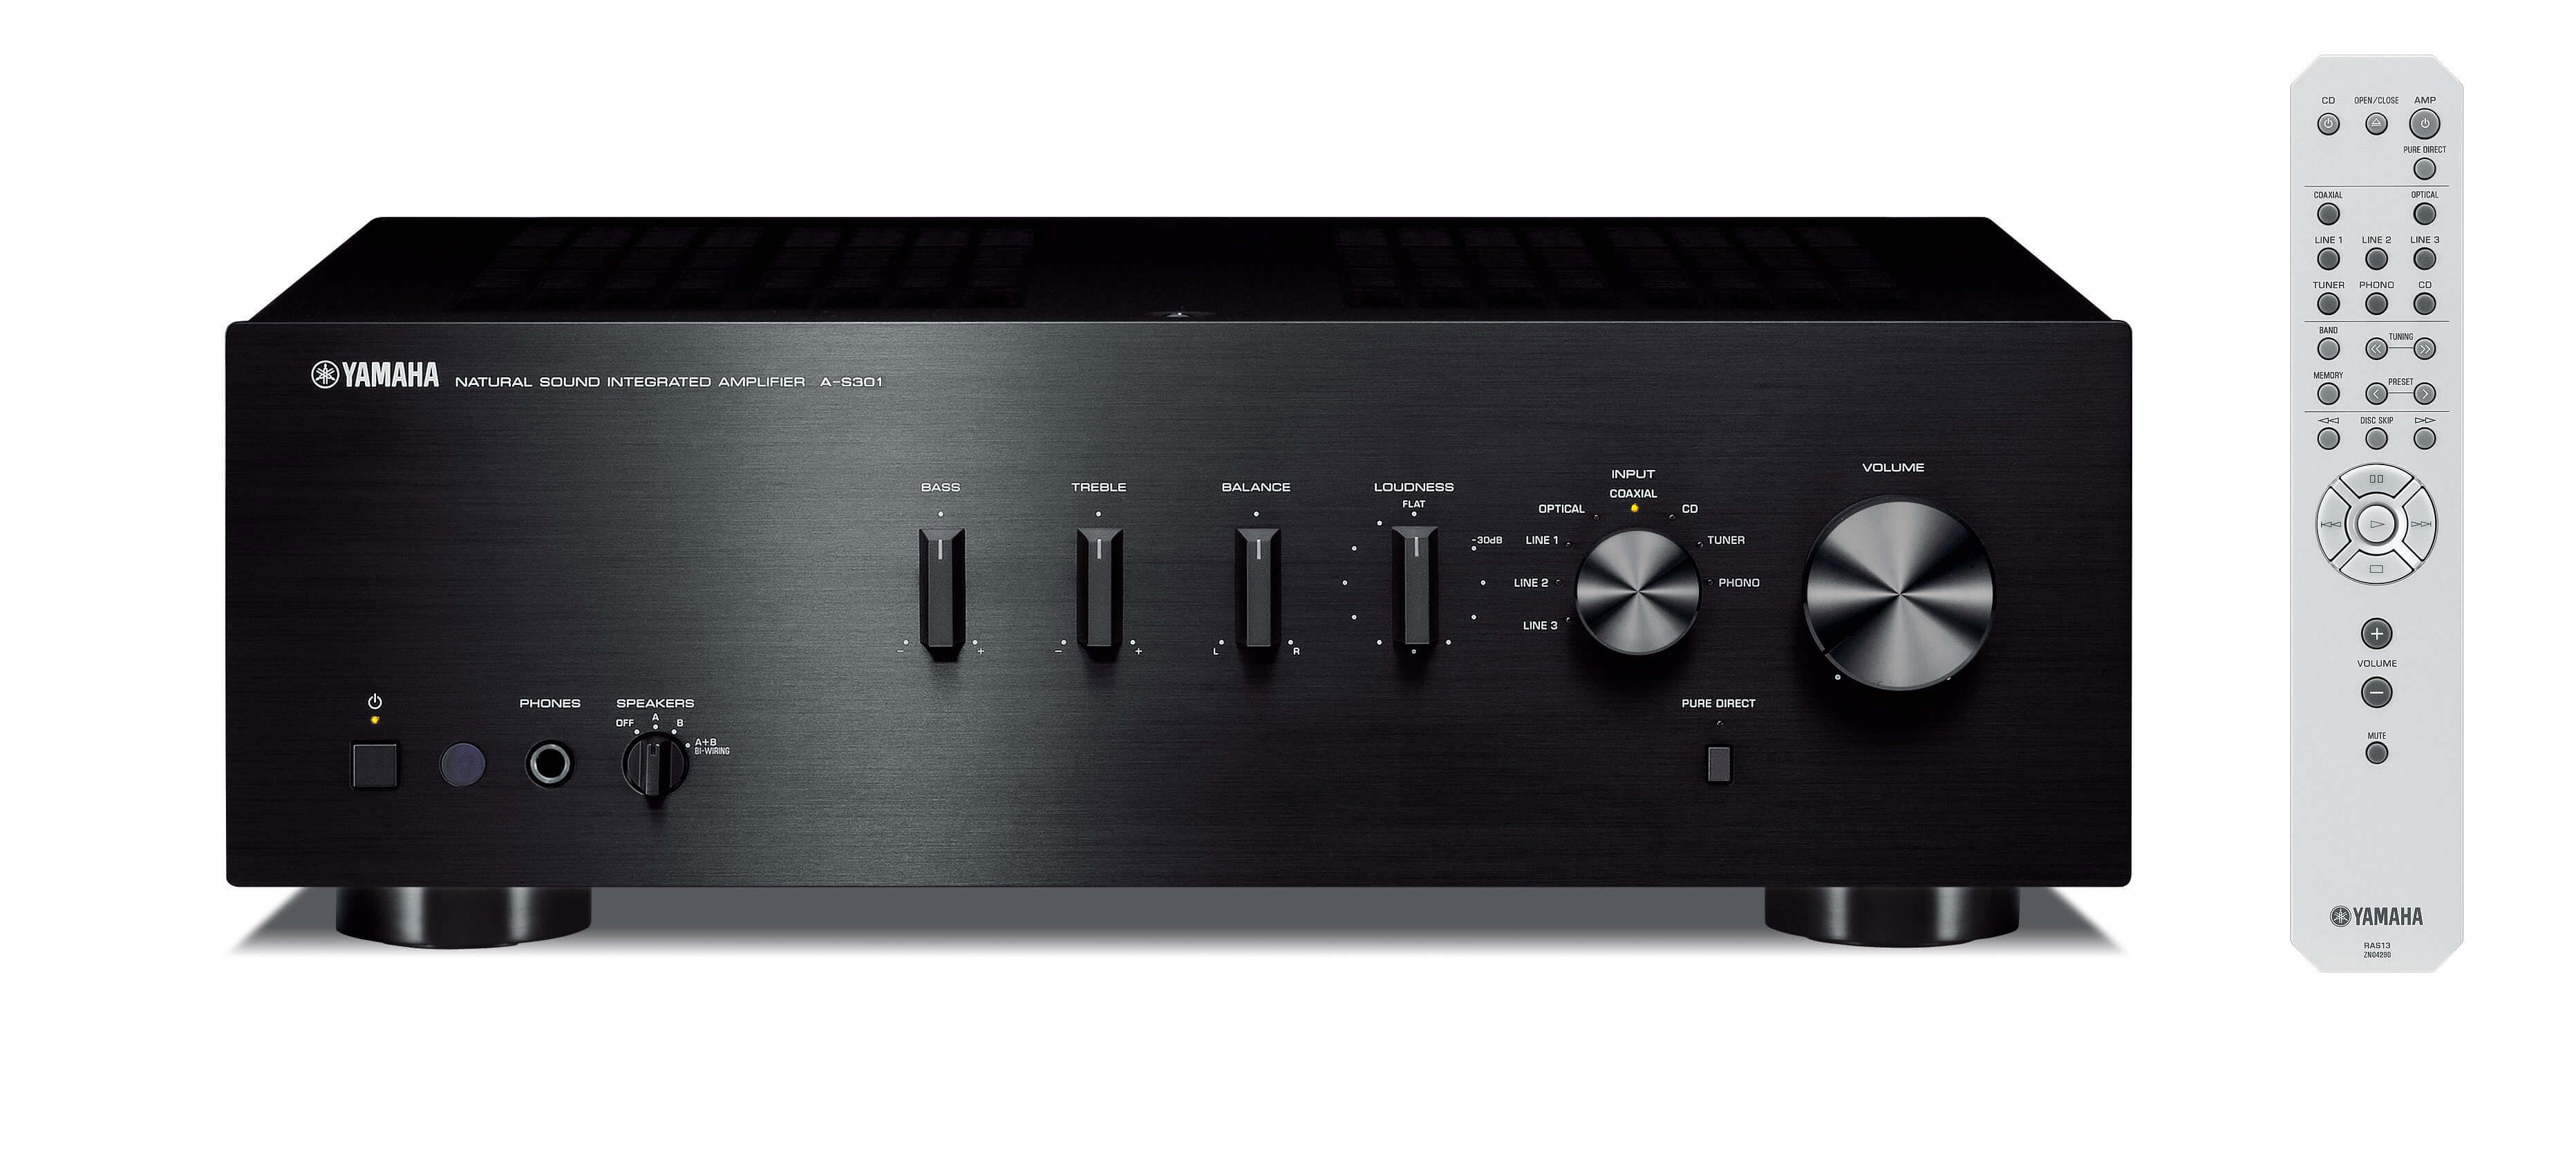 Integrated Amplifier Yamaha A-S301: